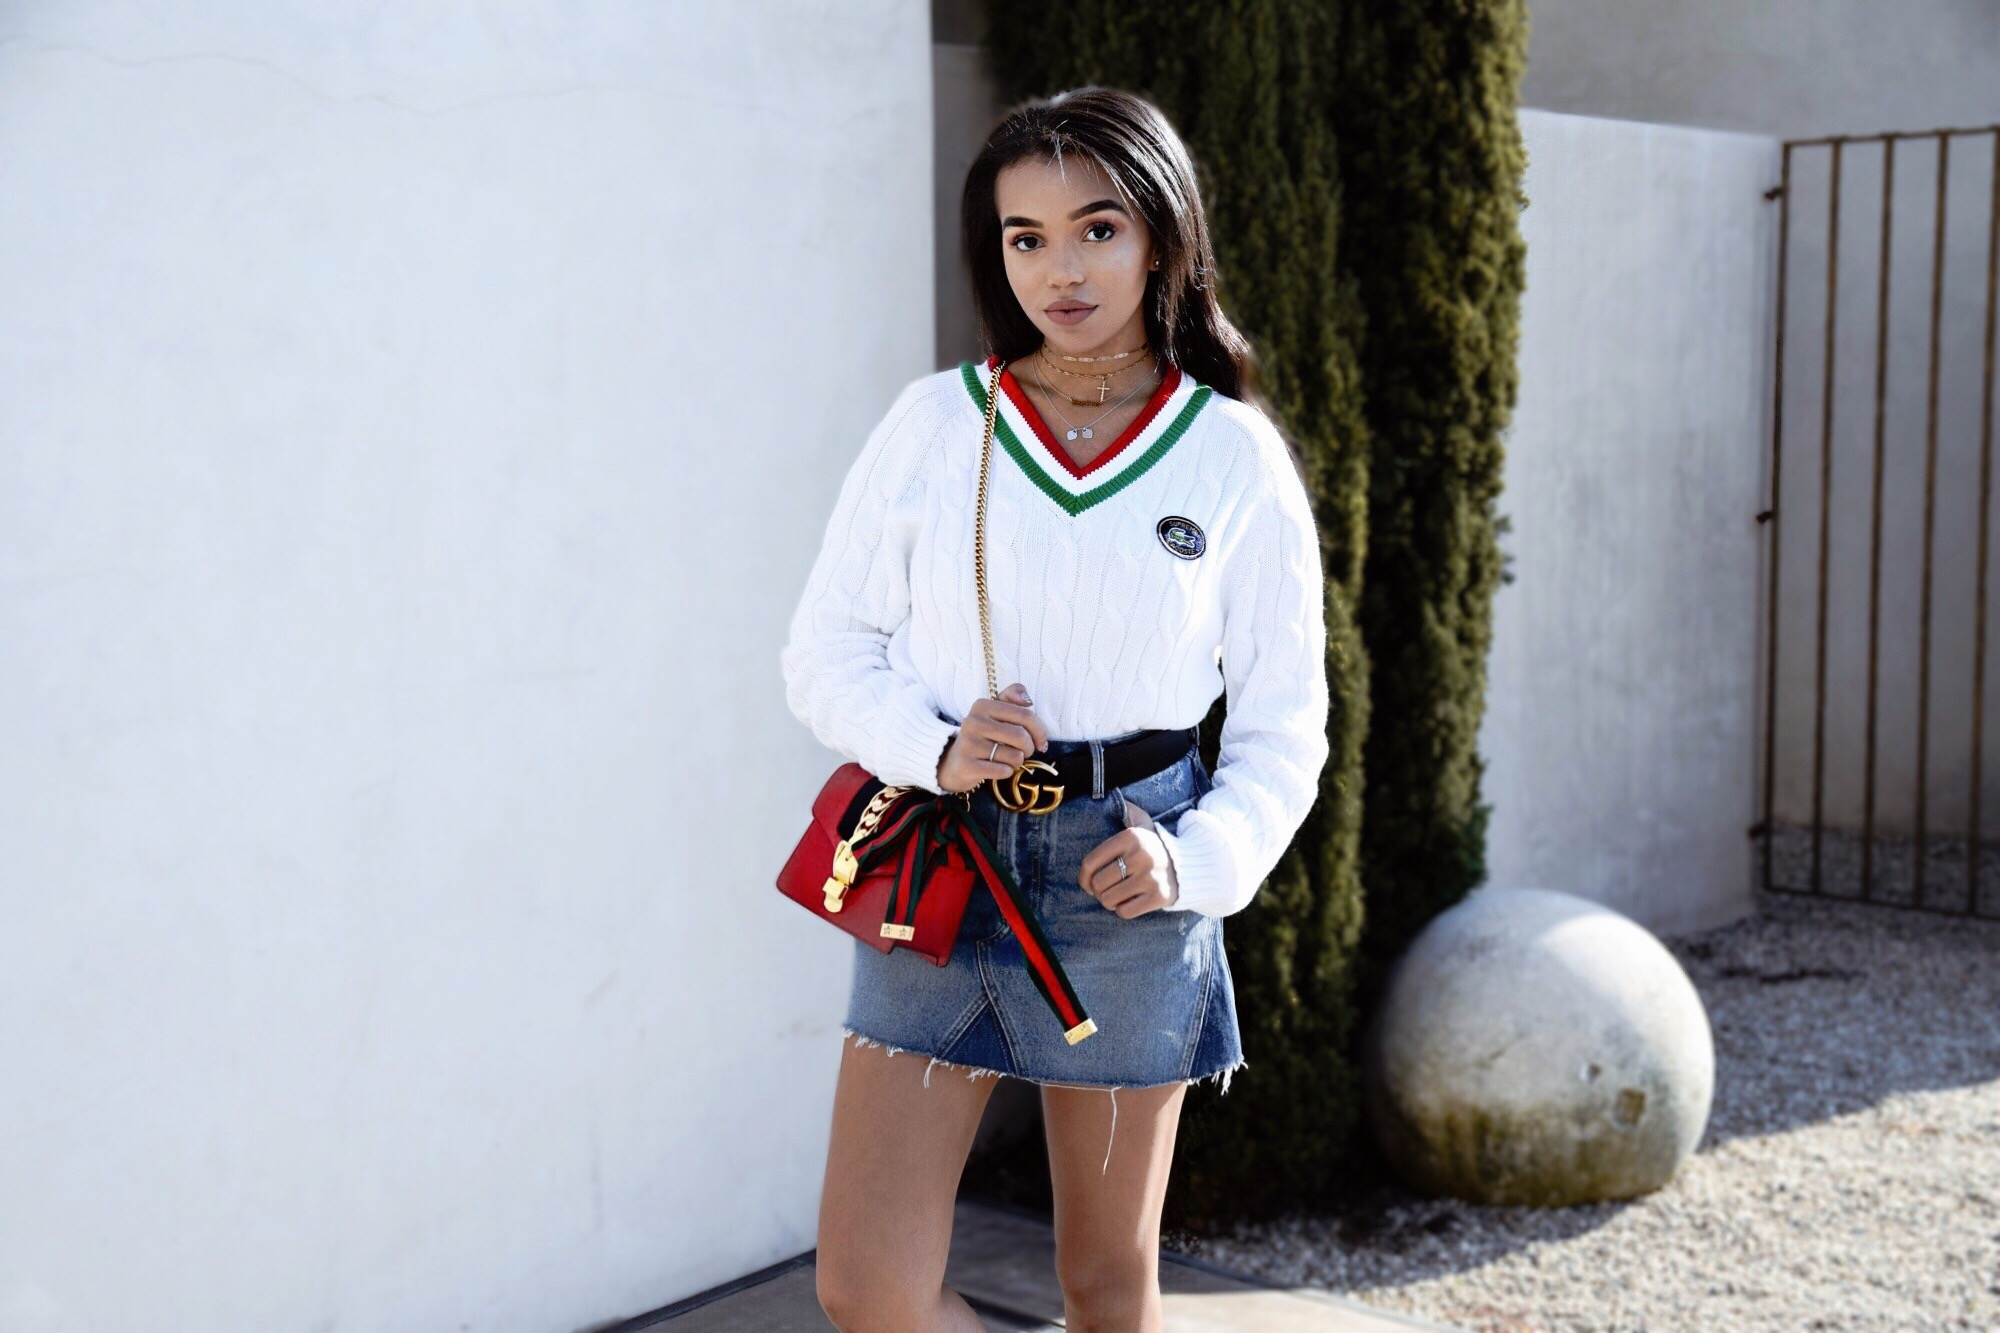 e79d6a9014b0 Supreme x Lacoste    Varsity Sweater Red and Green    GRLFRND Denim Mini  Skirt